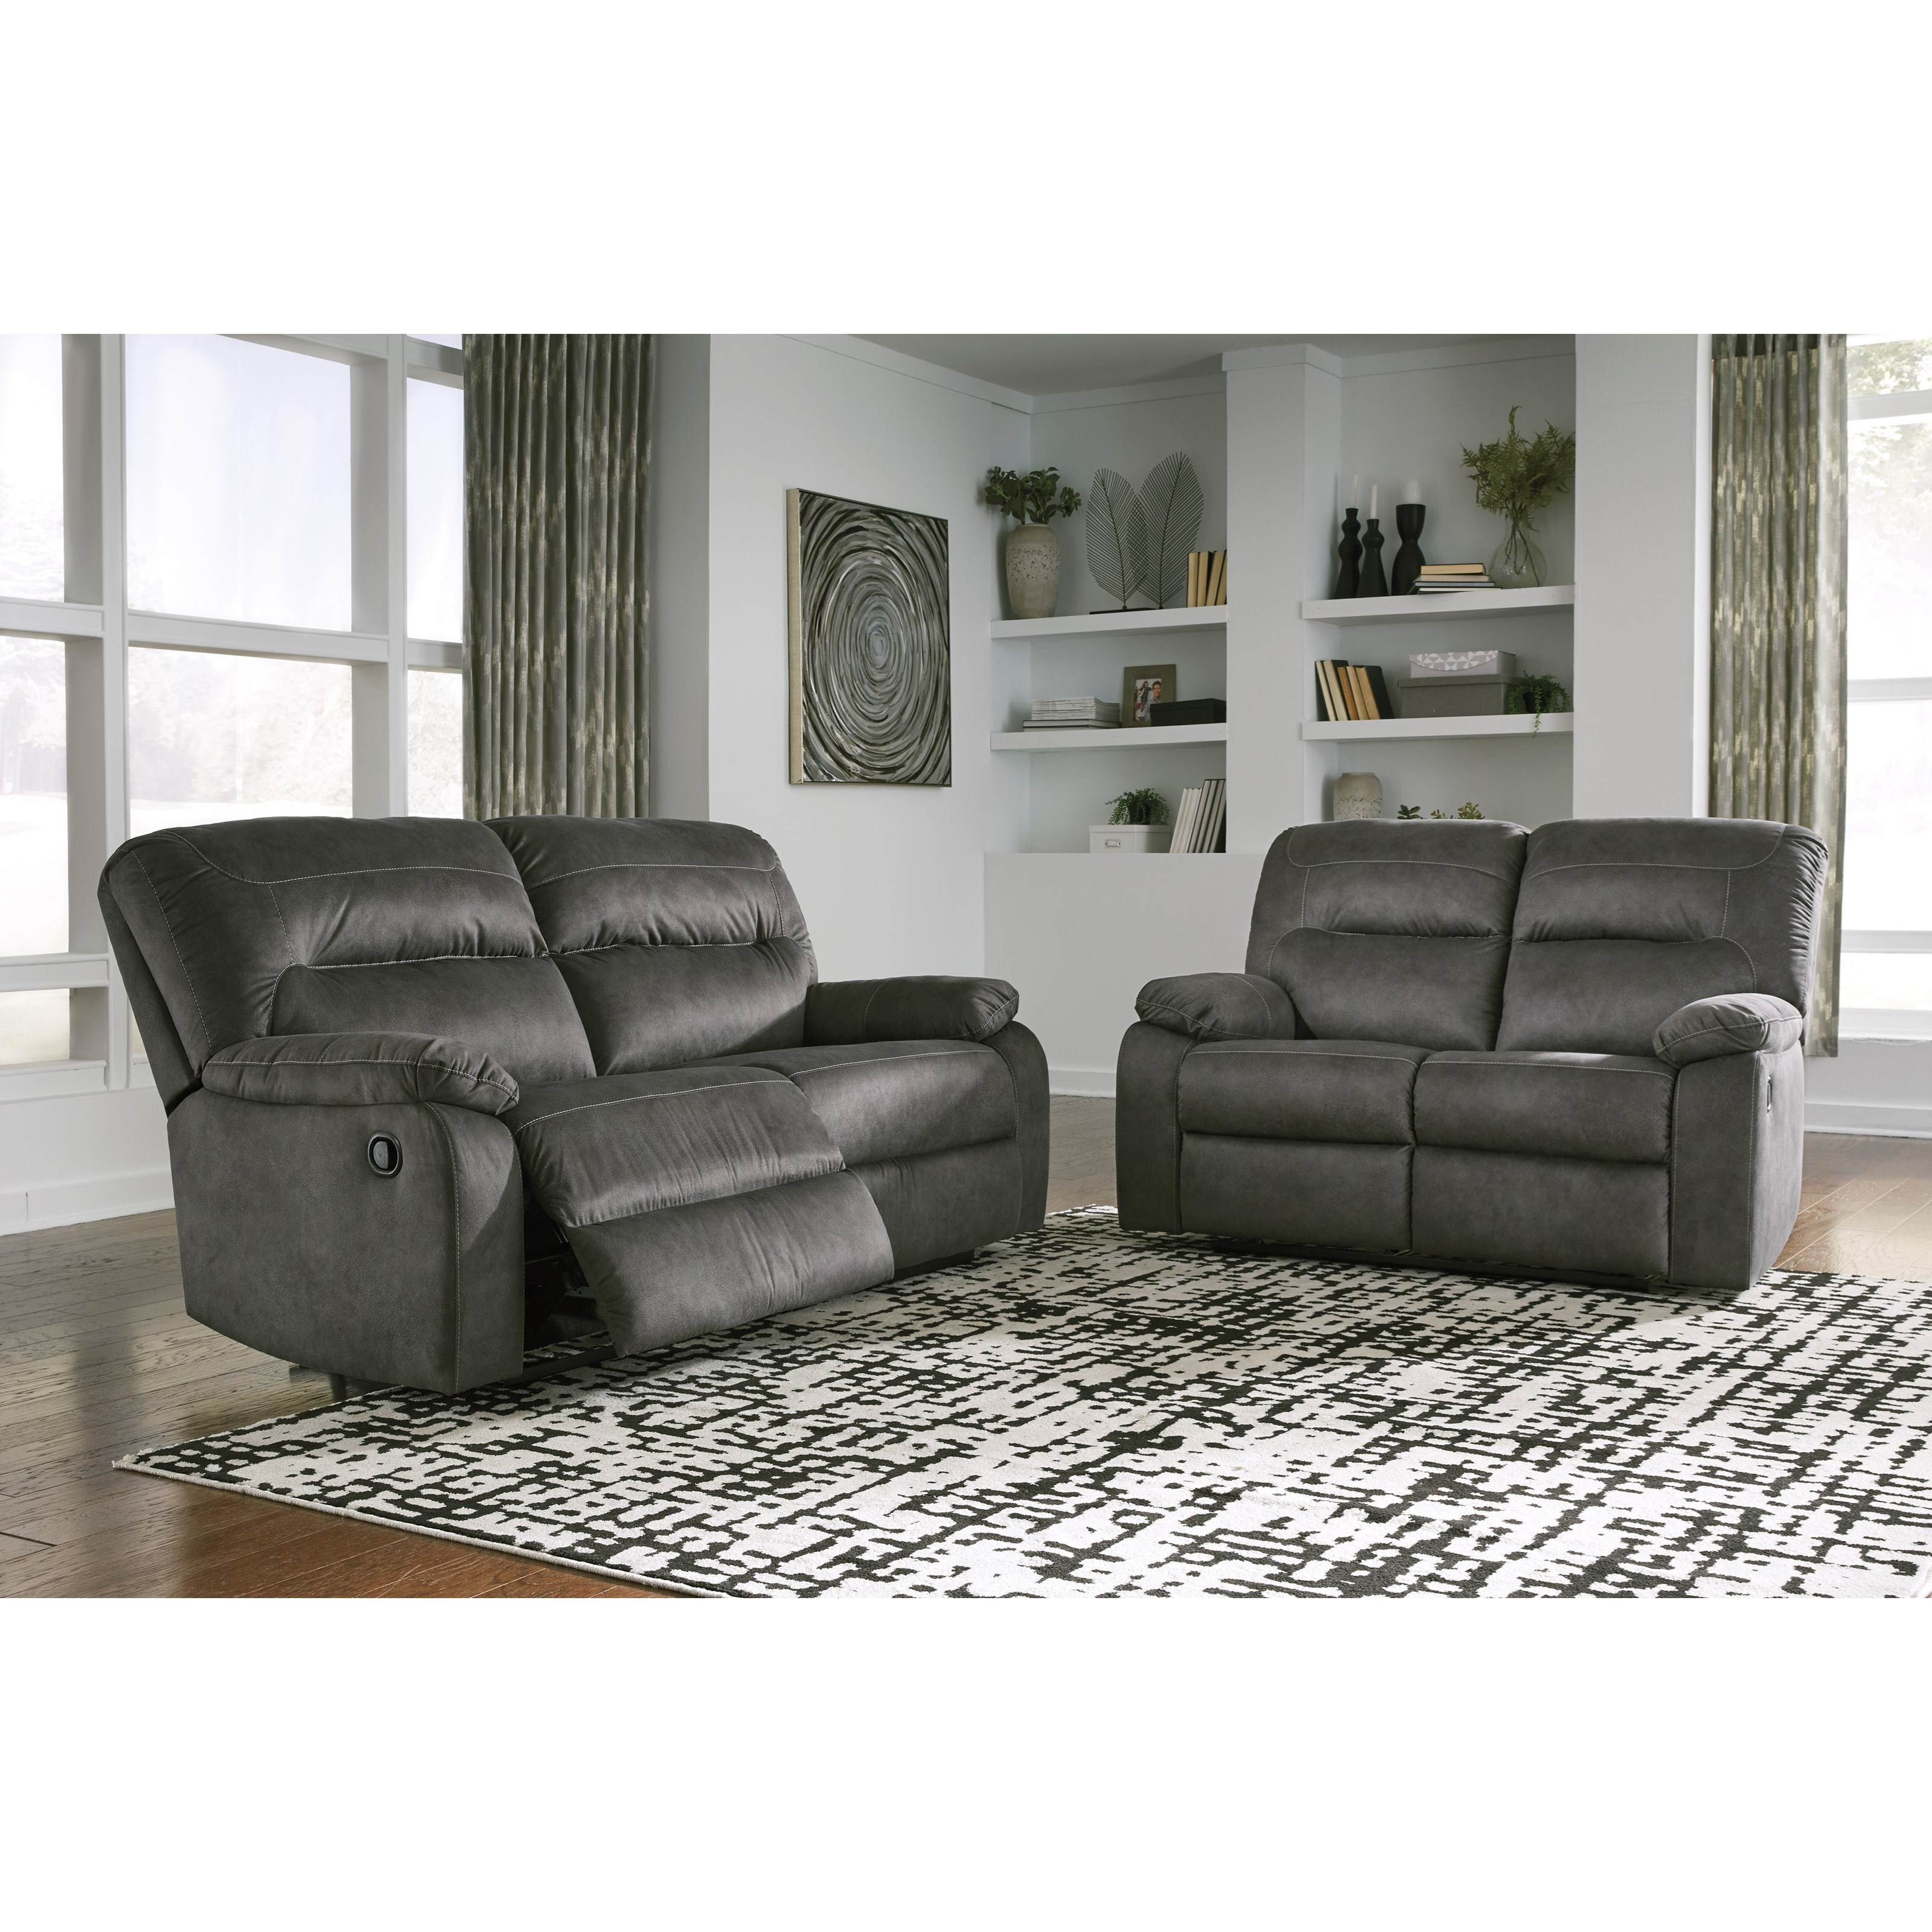 Bolzano Reclining Living Room Group by Benchcraft at Zak's Warehouse Clearance Center